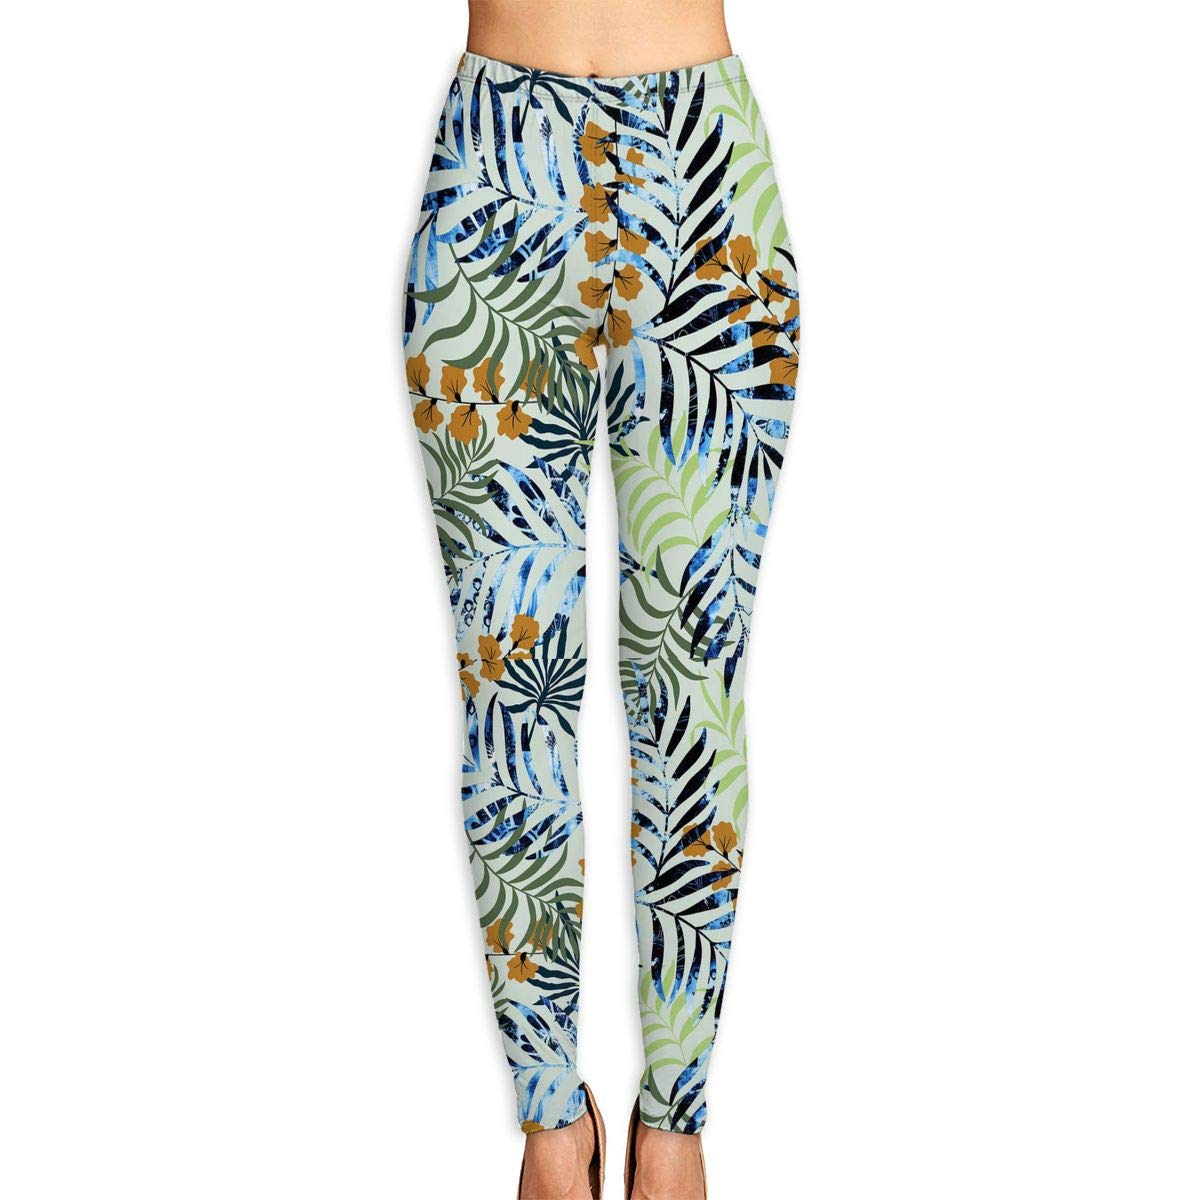 Ayf-S478 Flower in The Tree Womens Yoga Pants Sports Workout Leggings Athletic Tight Pants Fitness Power Stretch Yoga Leggings Tummy Control